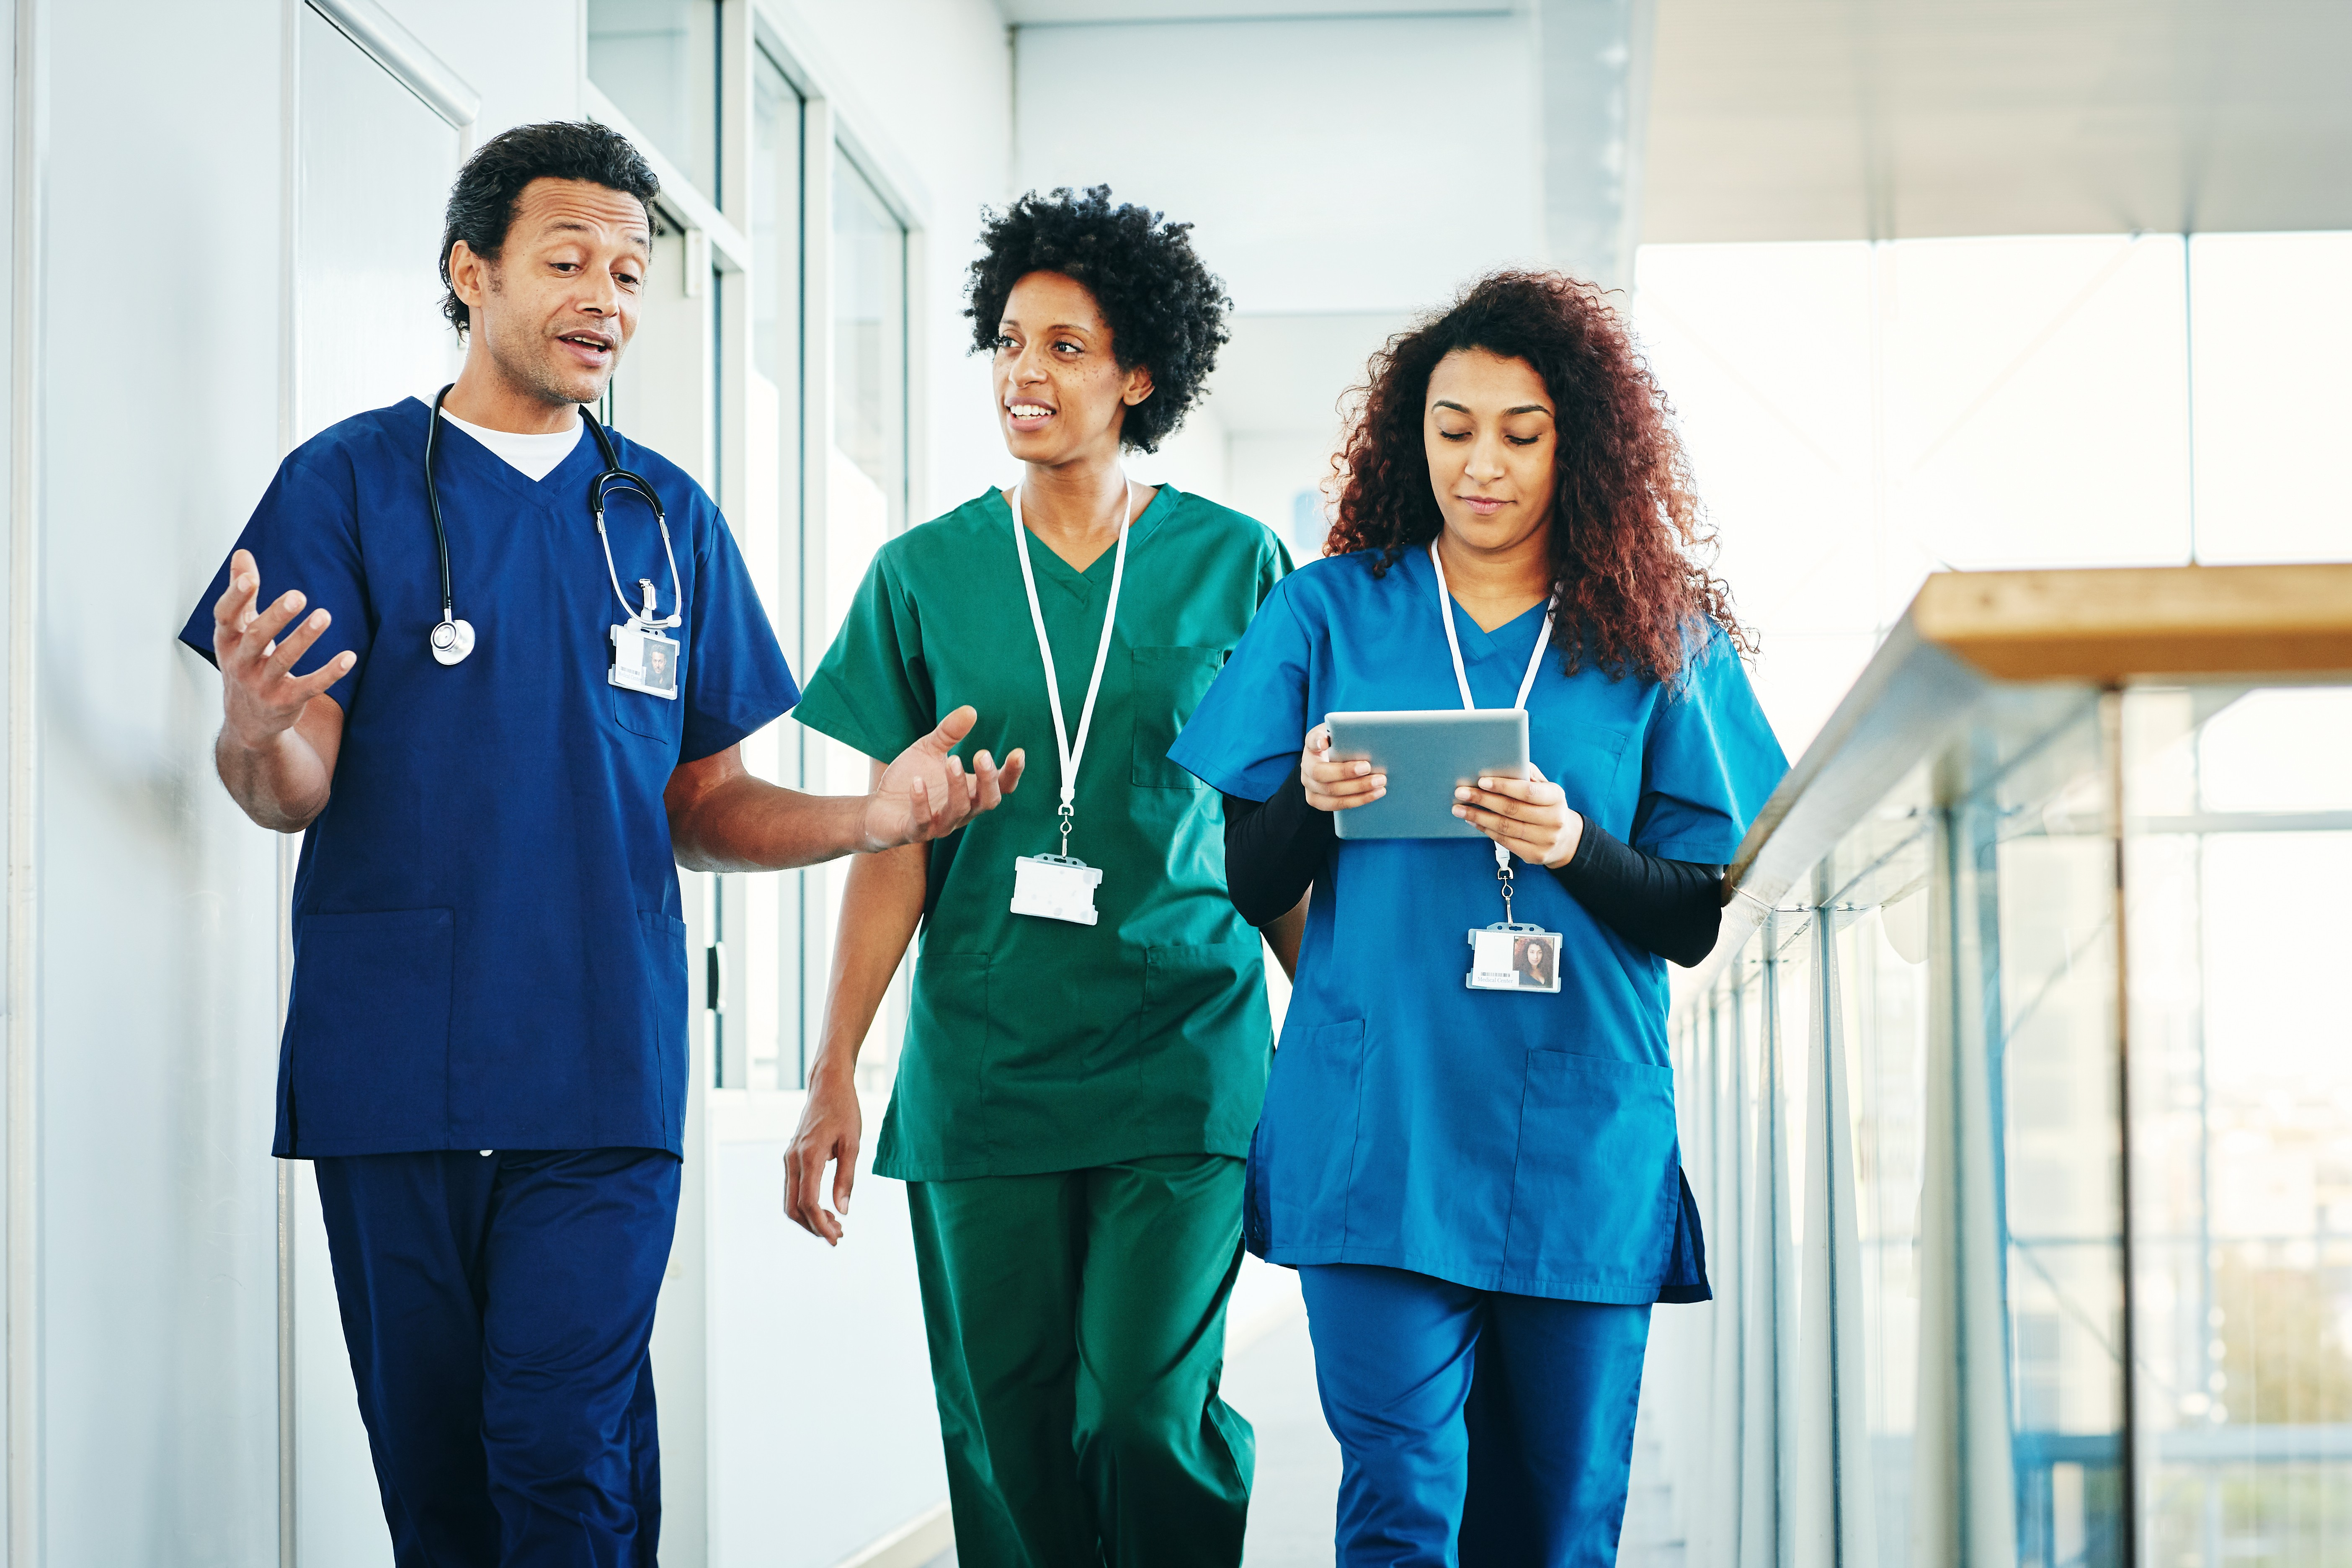 Group of medical professionals discussing while walking down hospital corridor